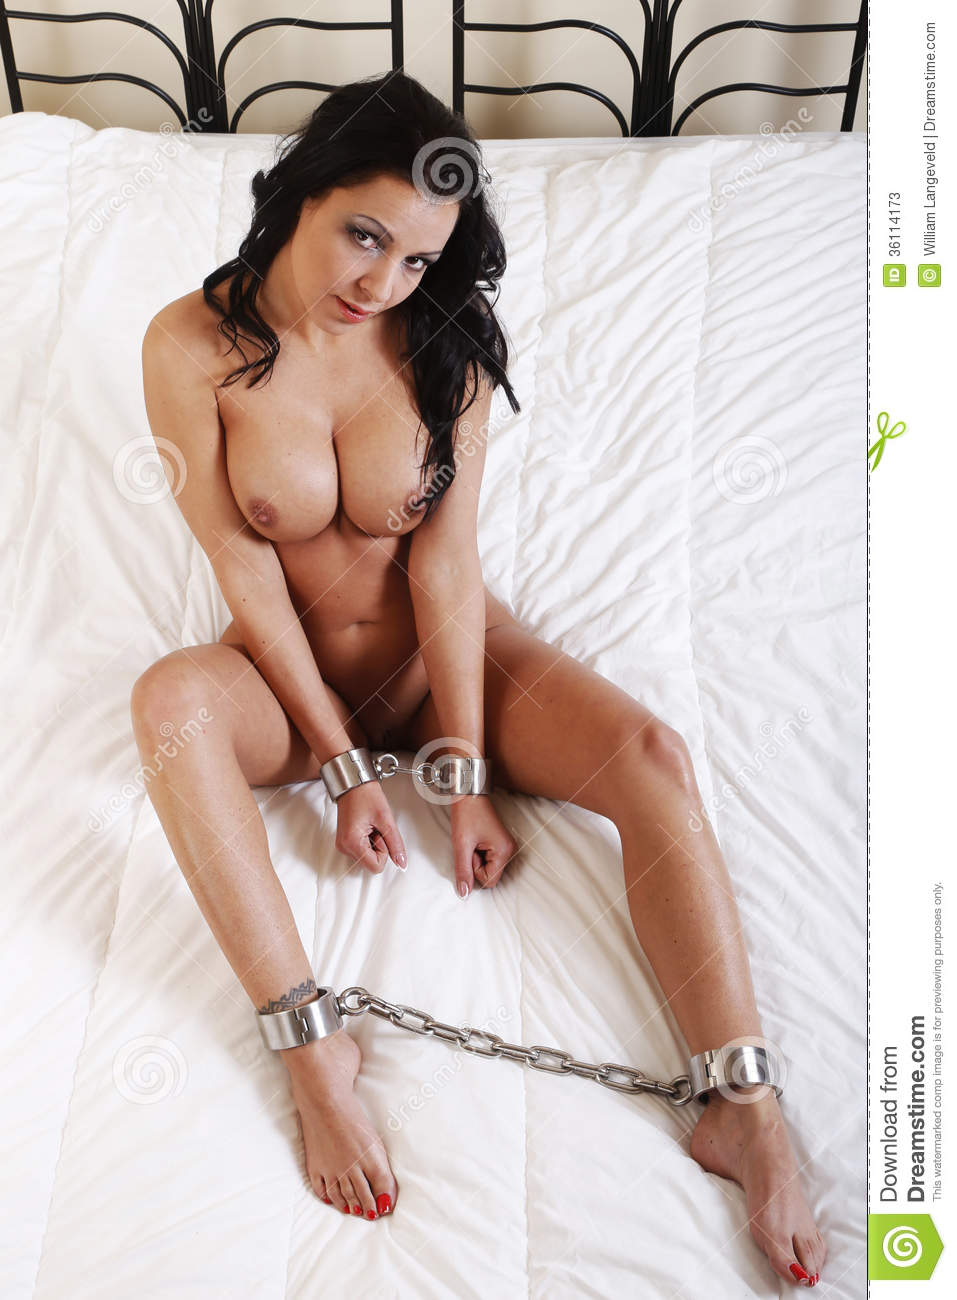 Beautful Nude Or Naked Woman Handcuffed Stock Image -2880